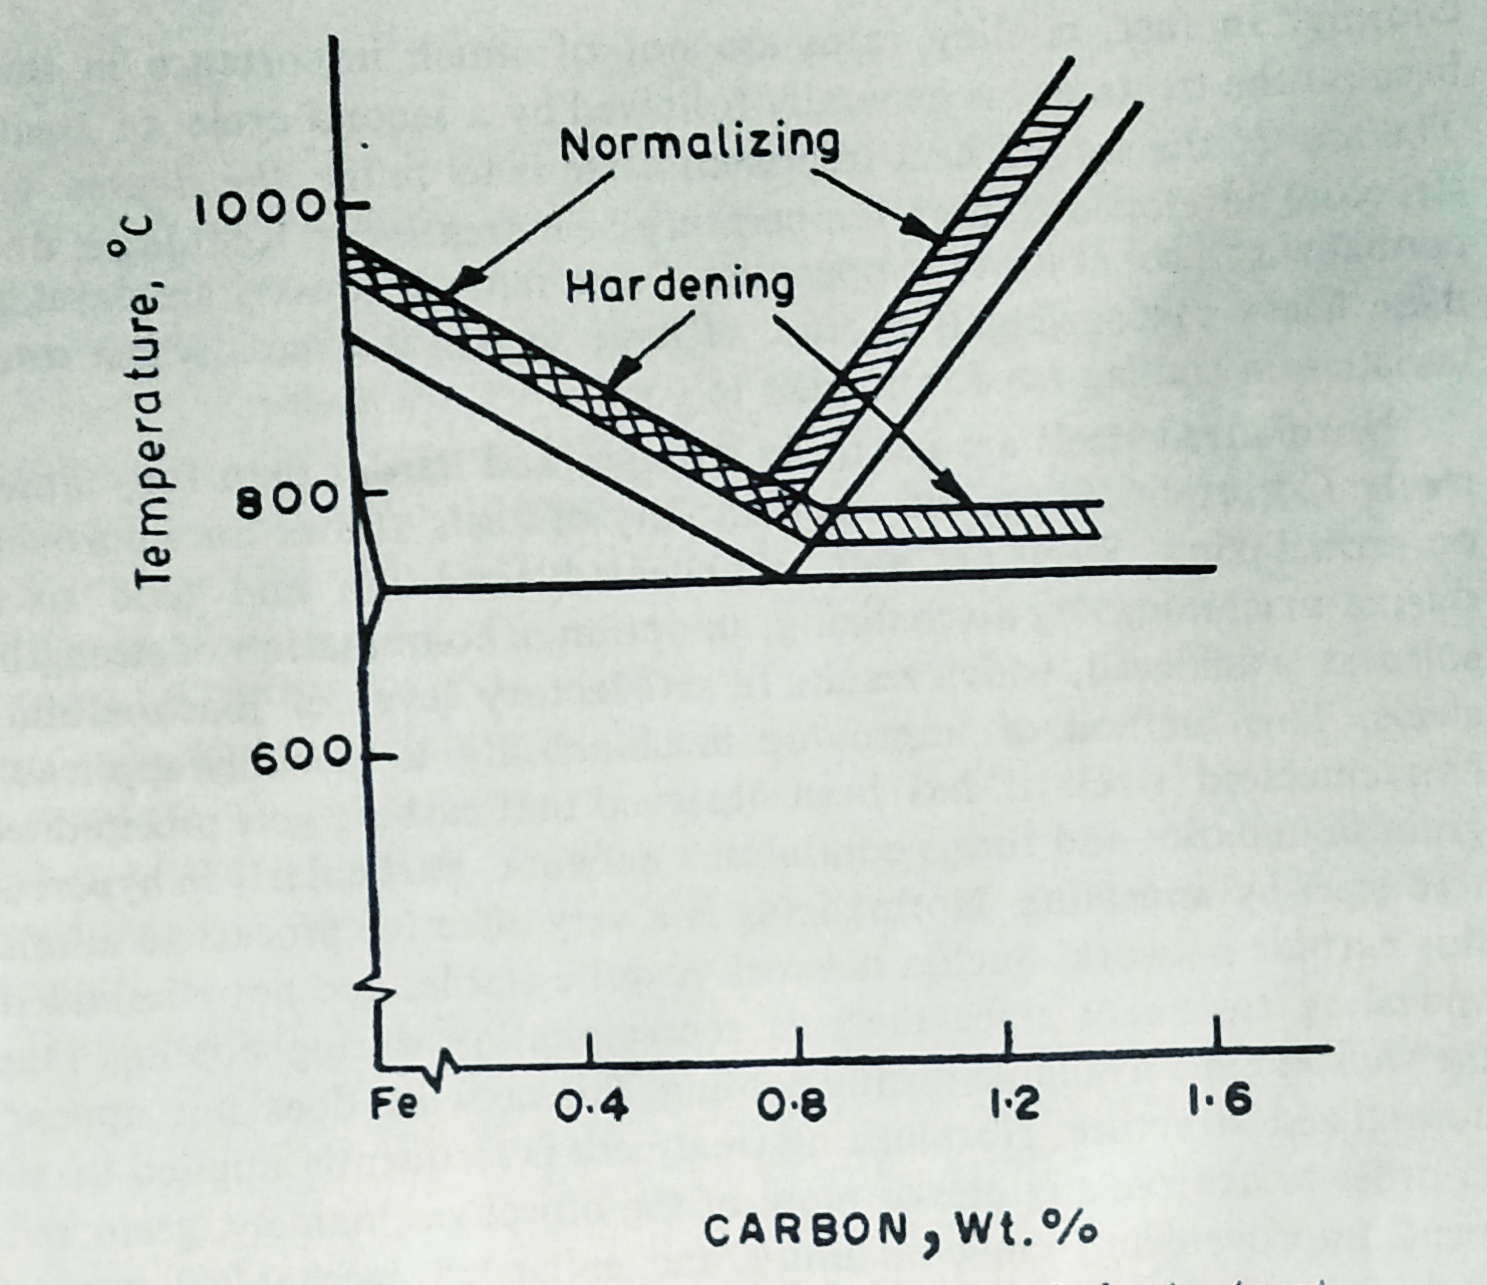 hight resolution of normalizing hardening heat treatment for steels